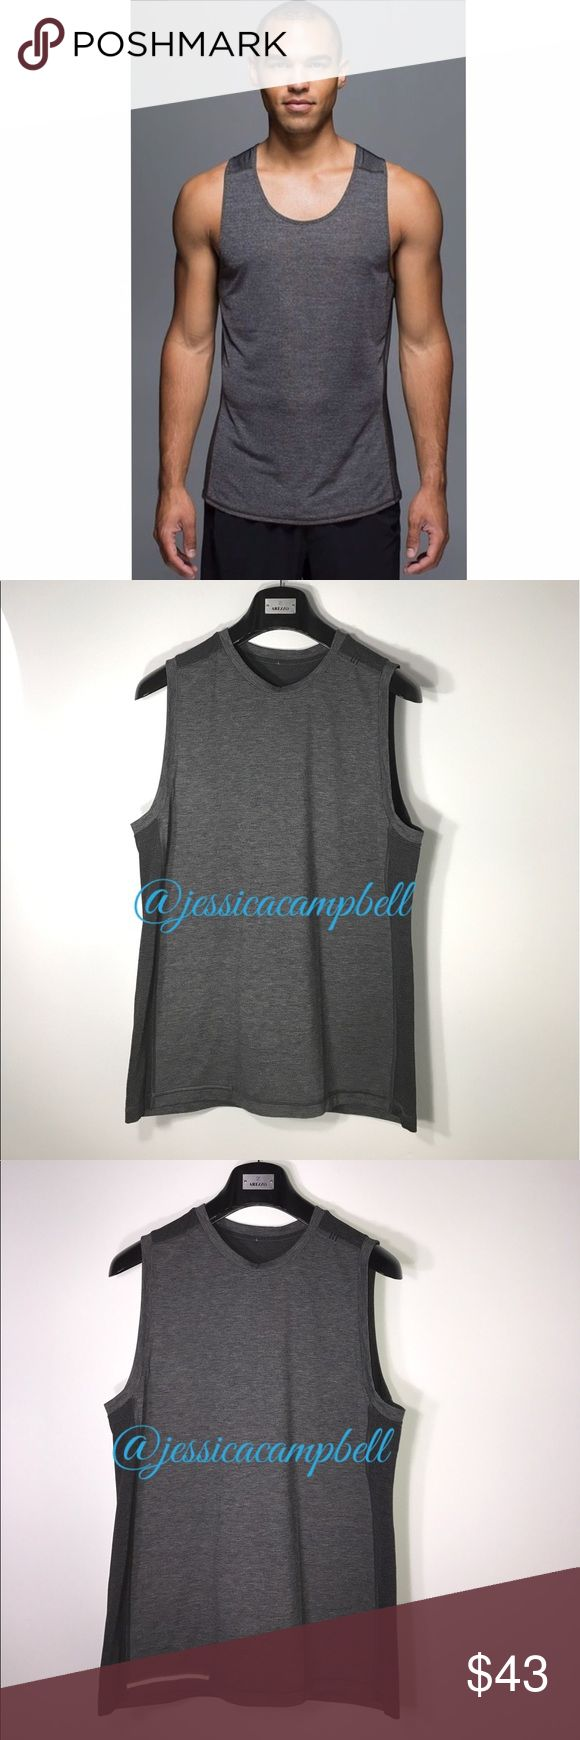 Lululemon {Men's} Metal Vent Tank Heathered Coal Lightweight anti-stink sleeveless shirt will be your multi-sport-go-to. Sweat wicking fabric is breathable,four way stretch. Reflective details in front and back for more visibility at night. No size tag but it's a size medium. Excellent condition. No flaws. All reasonable offers are welcome! Please make all offers through the offer button🤗 lululemon athletica Shirts